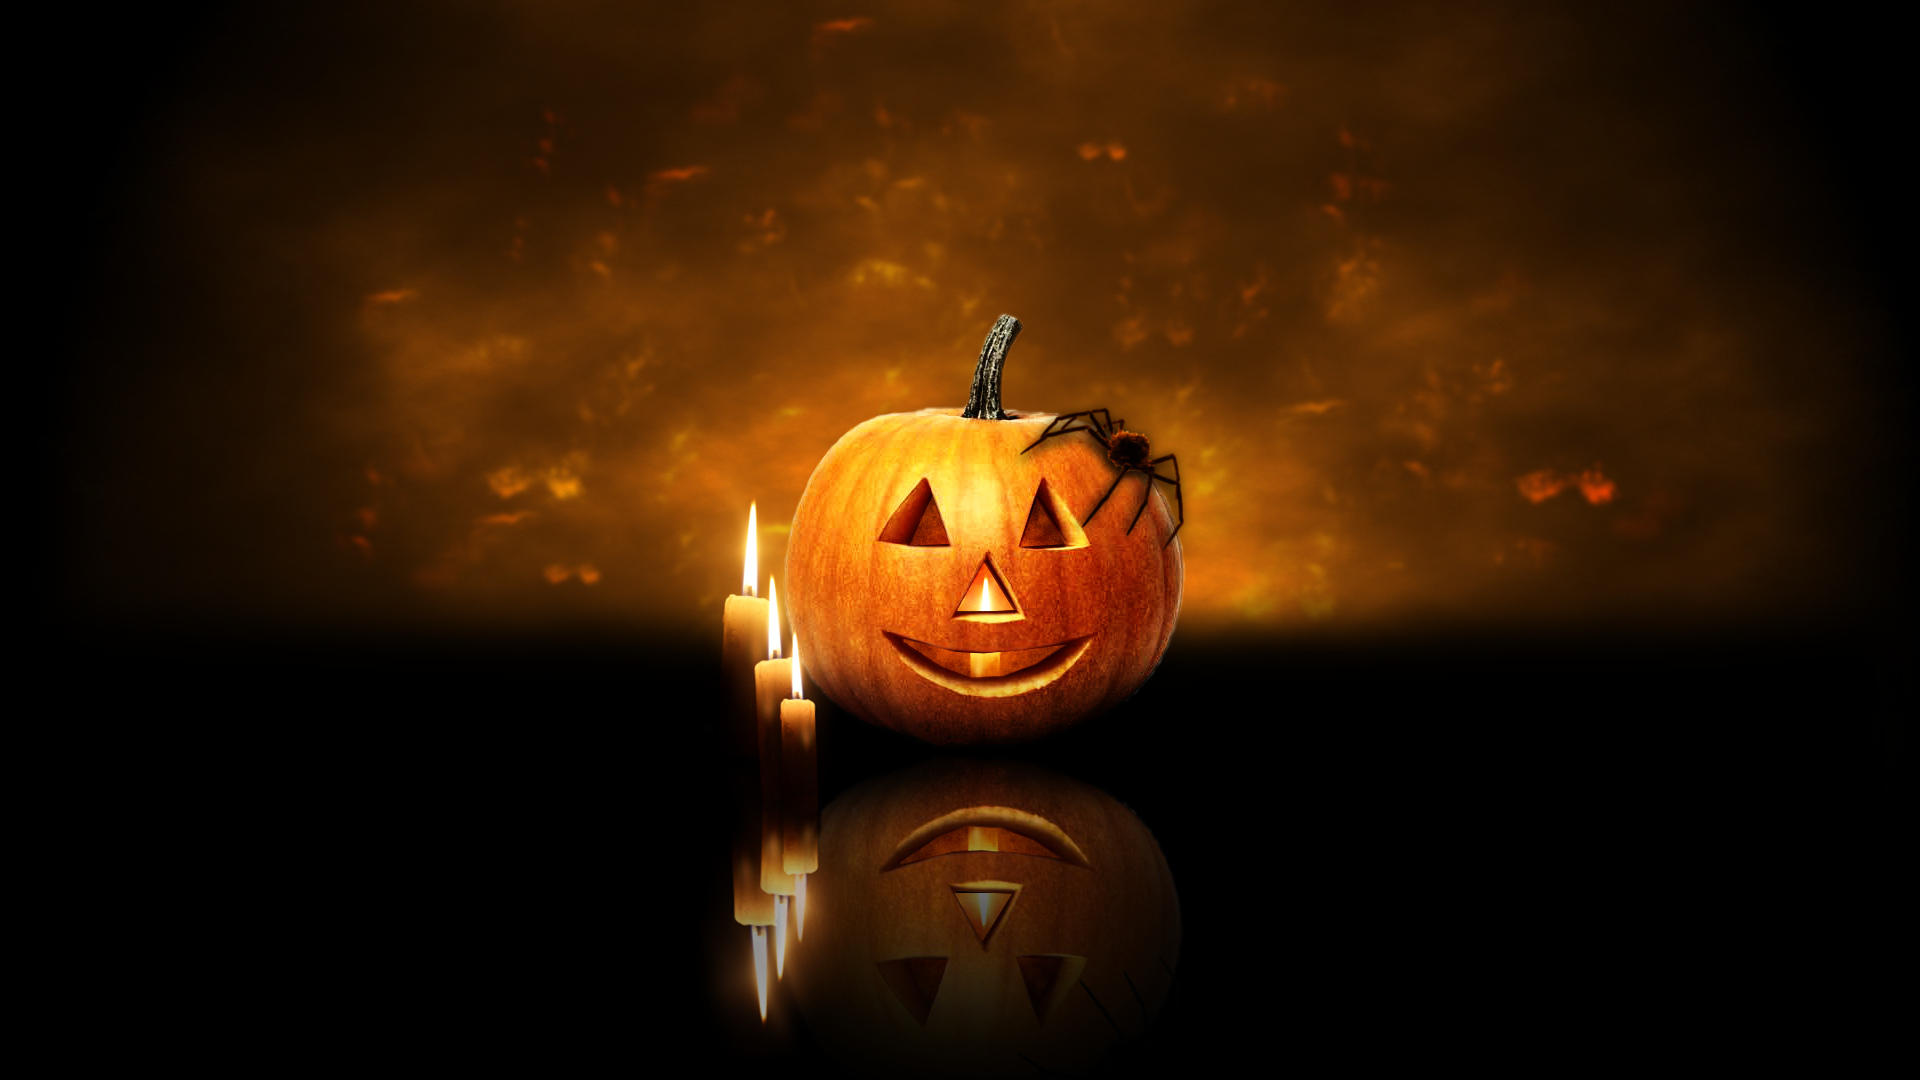 Scary Halloween 2012 HD Wallpapers Pumpkins Witches 1920x1080